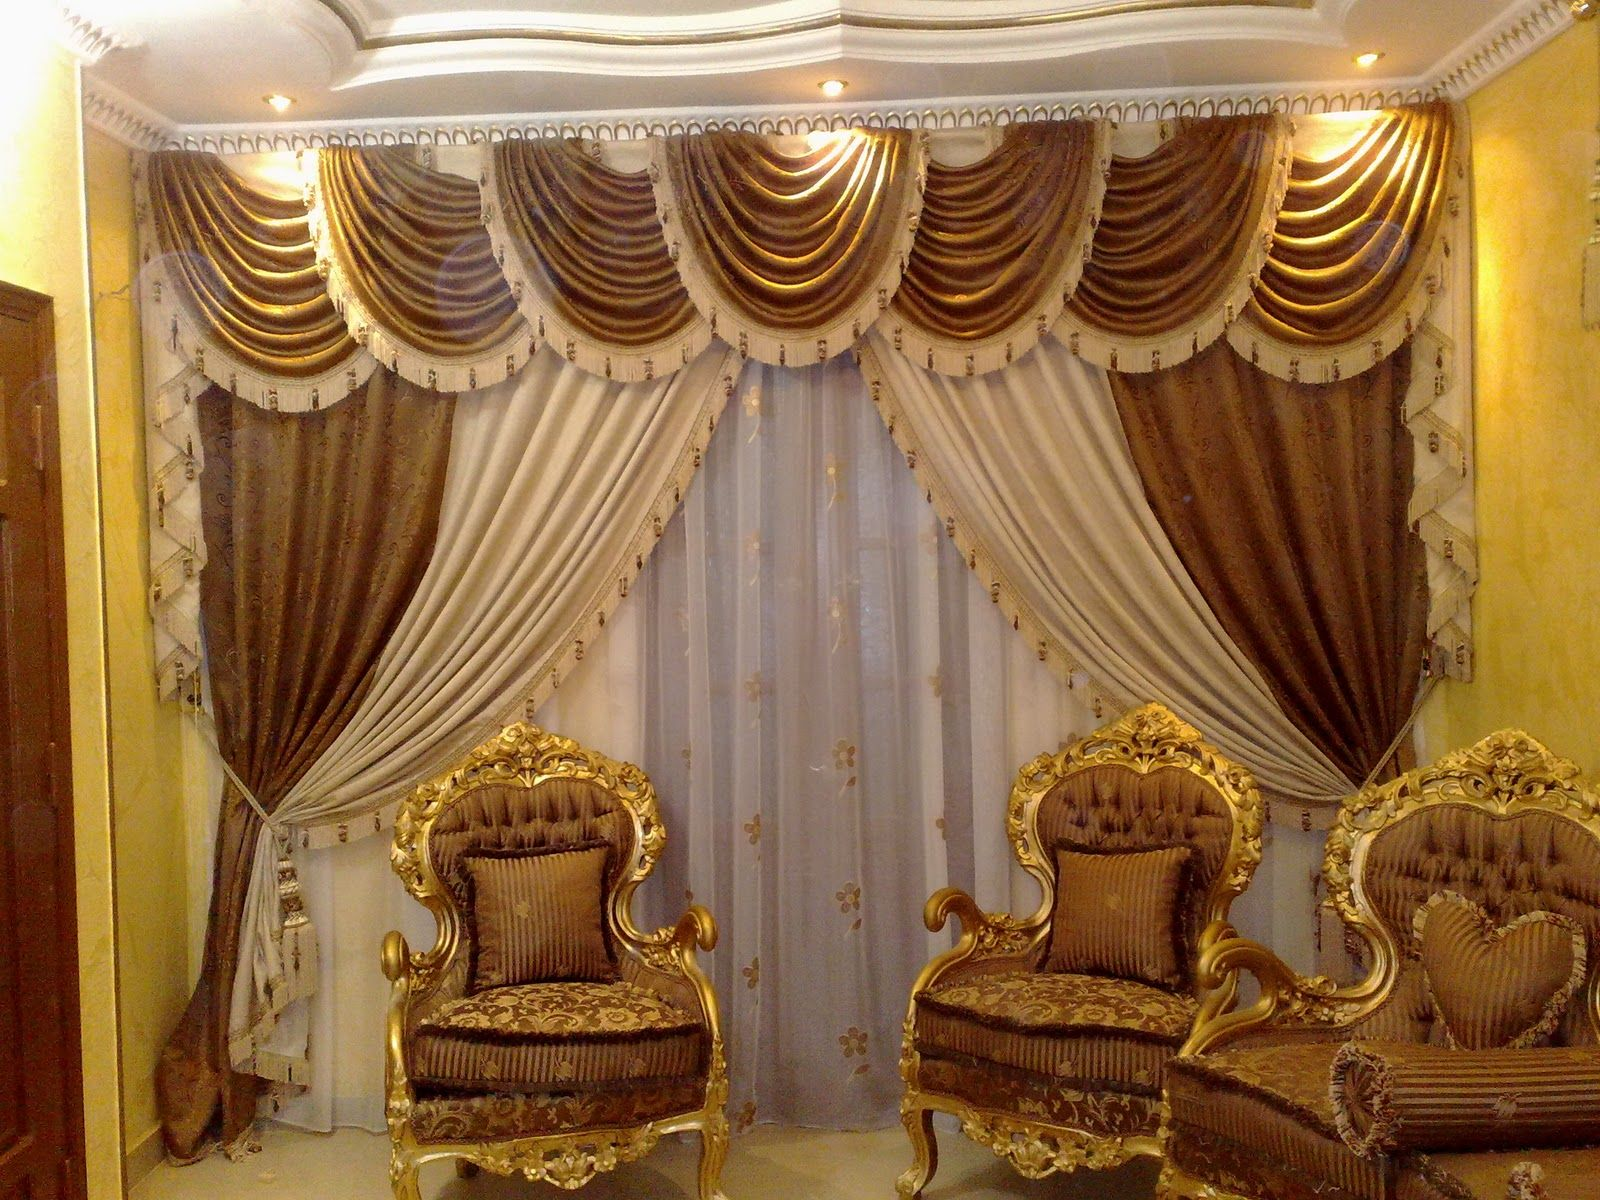 Classic curtain designs for living room - Luxurious Living Room Curtains Luxury Curtain Designs For Small Gold Living Room Window Interior